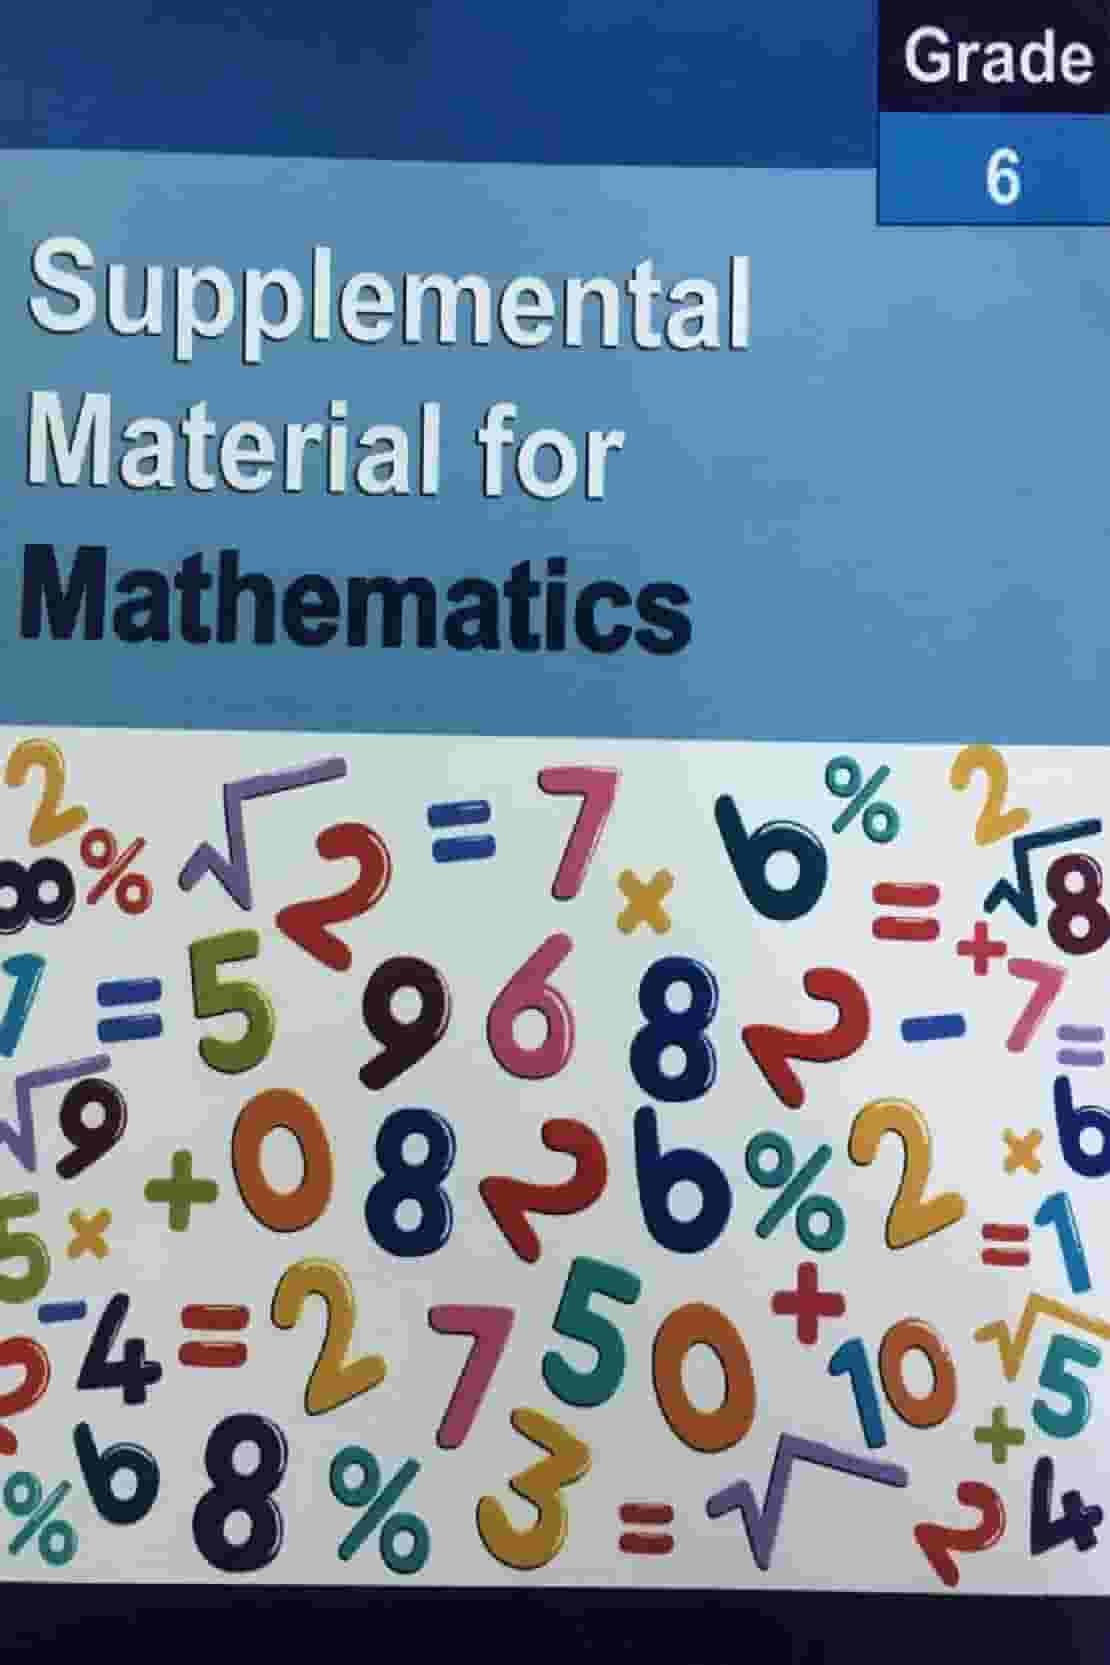 SUPPLEMENTAL MATERIAL FOR MATHEMATICS CLASS 6